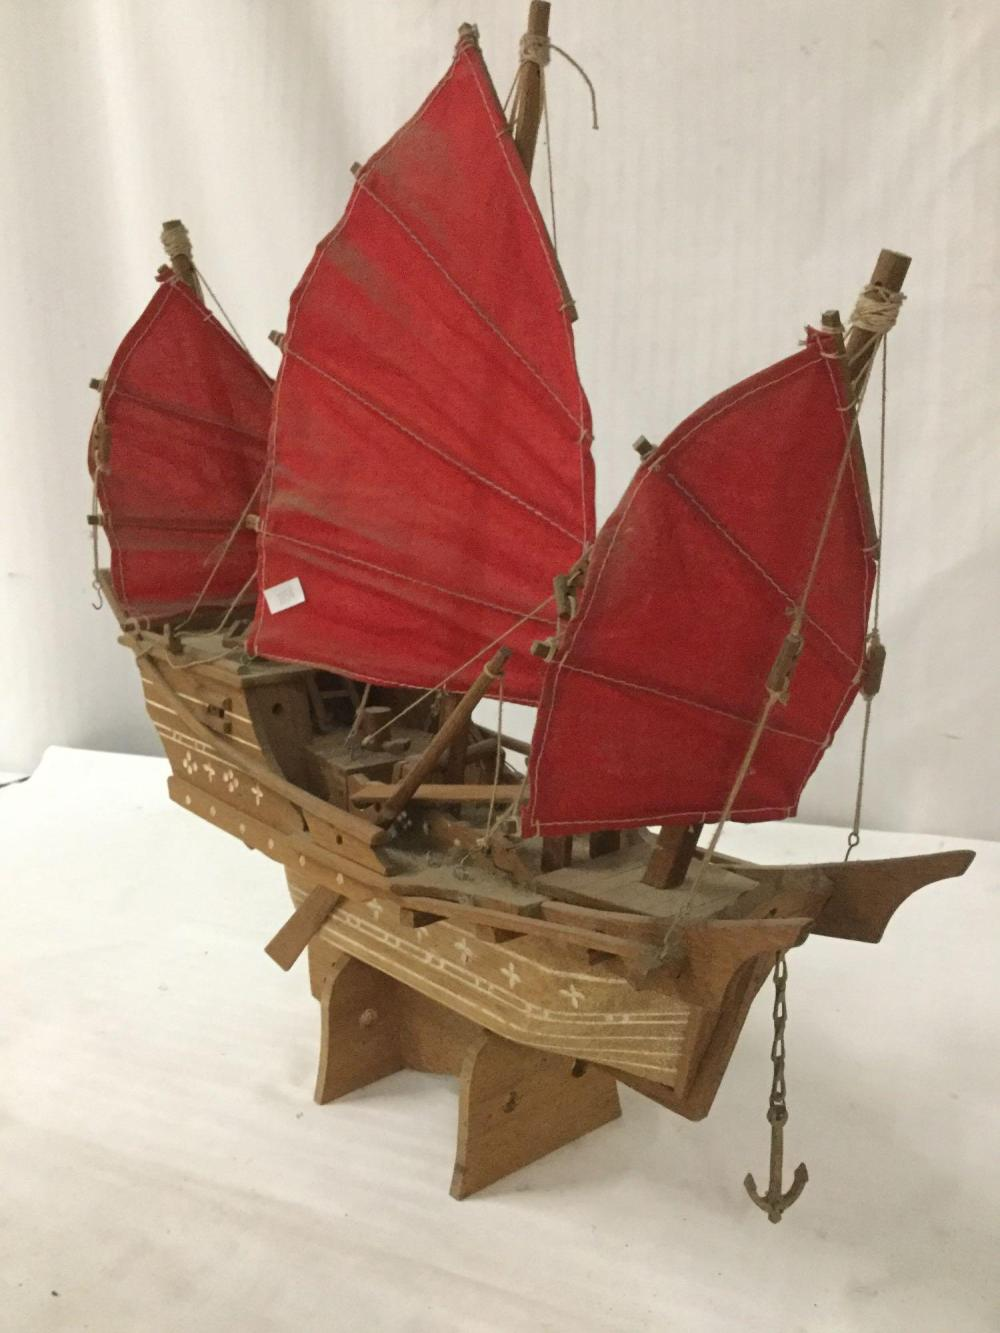 Lot 301: Vintage wooden ship model with wood stand and red cloth sails